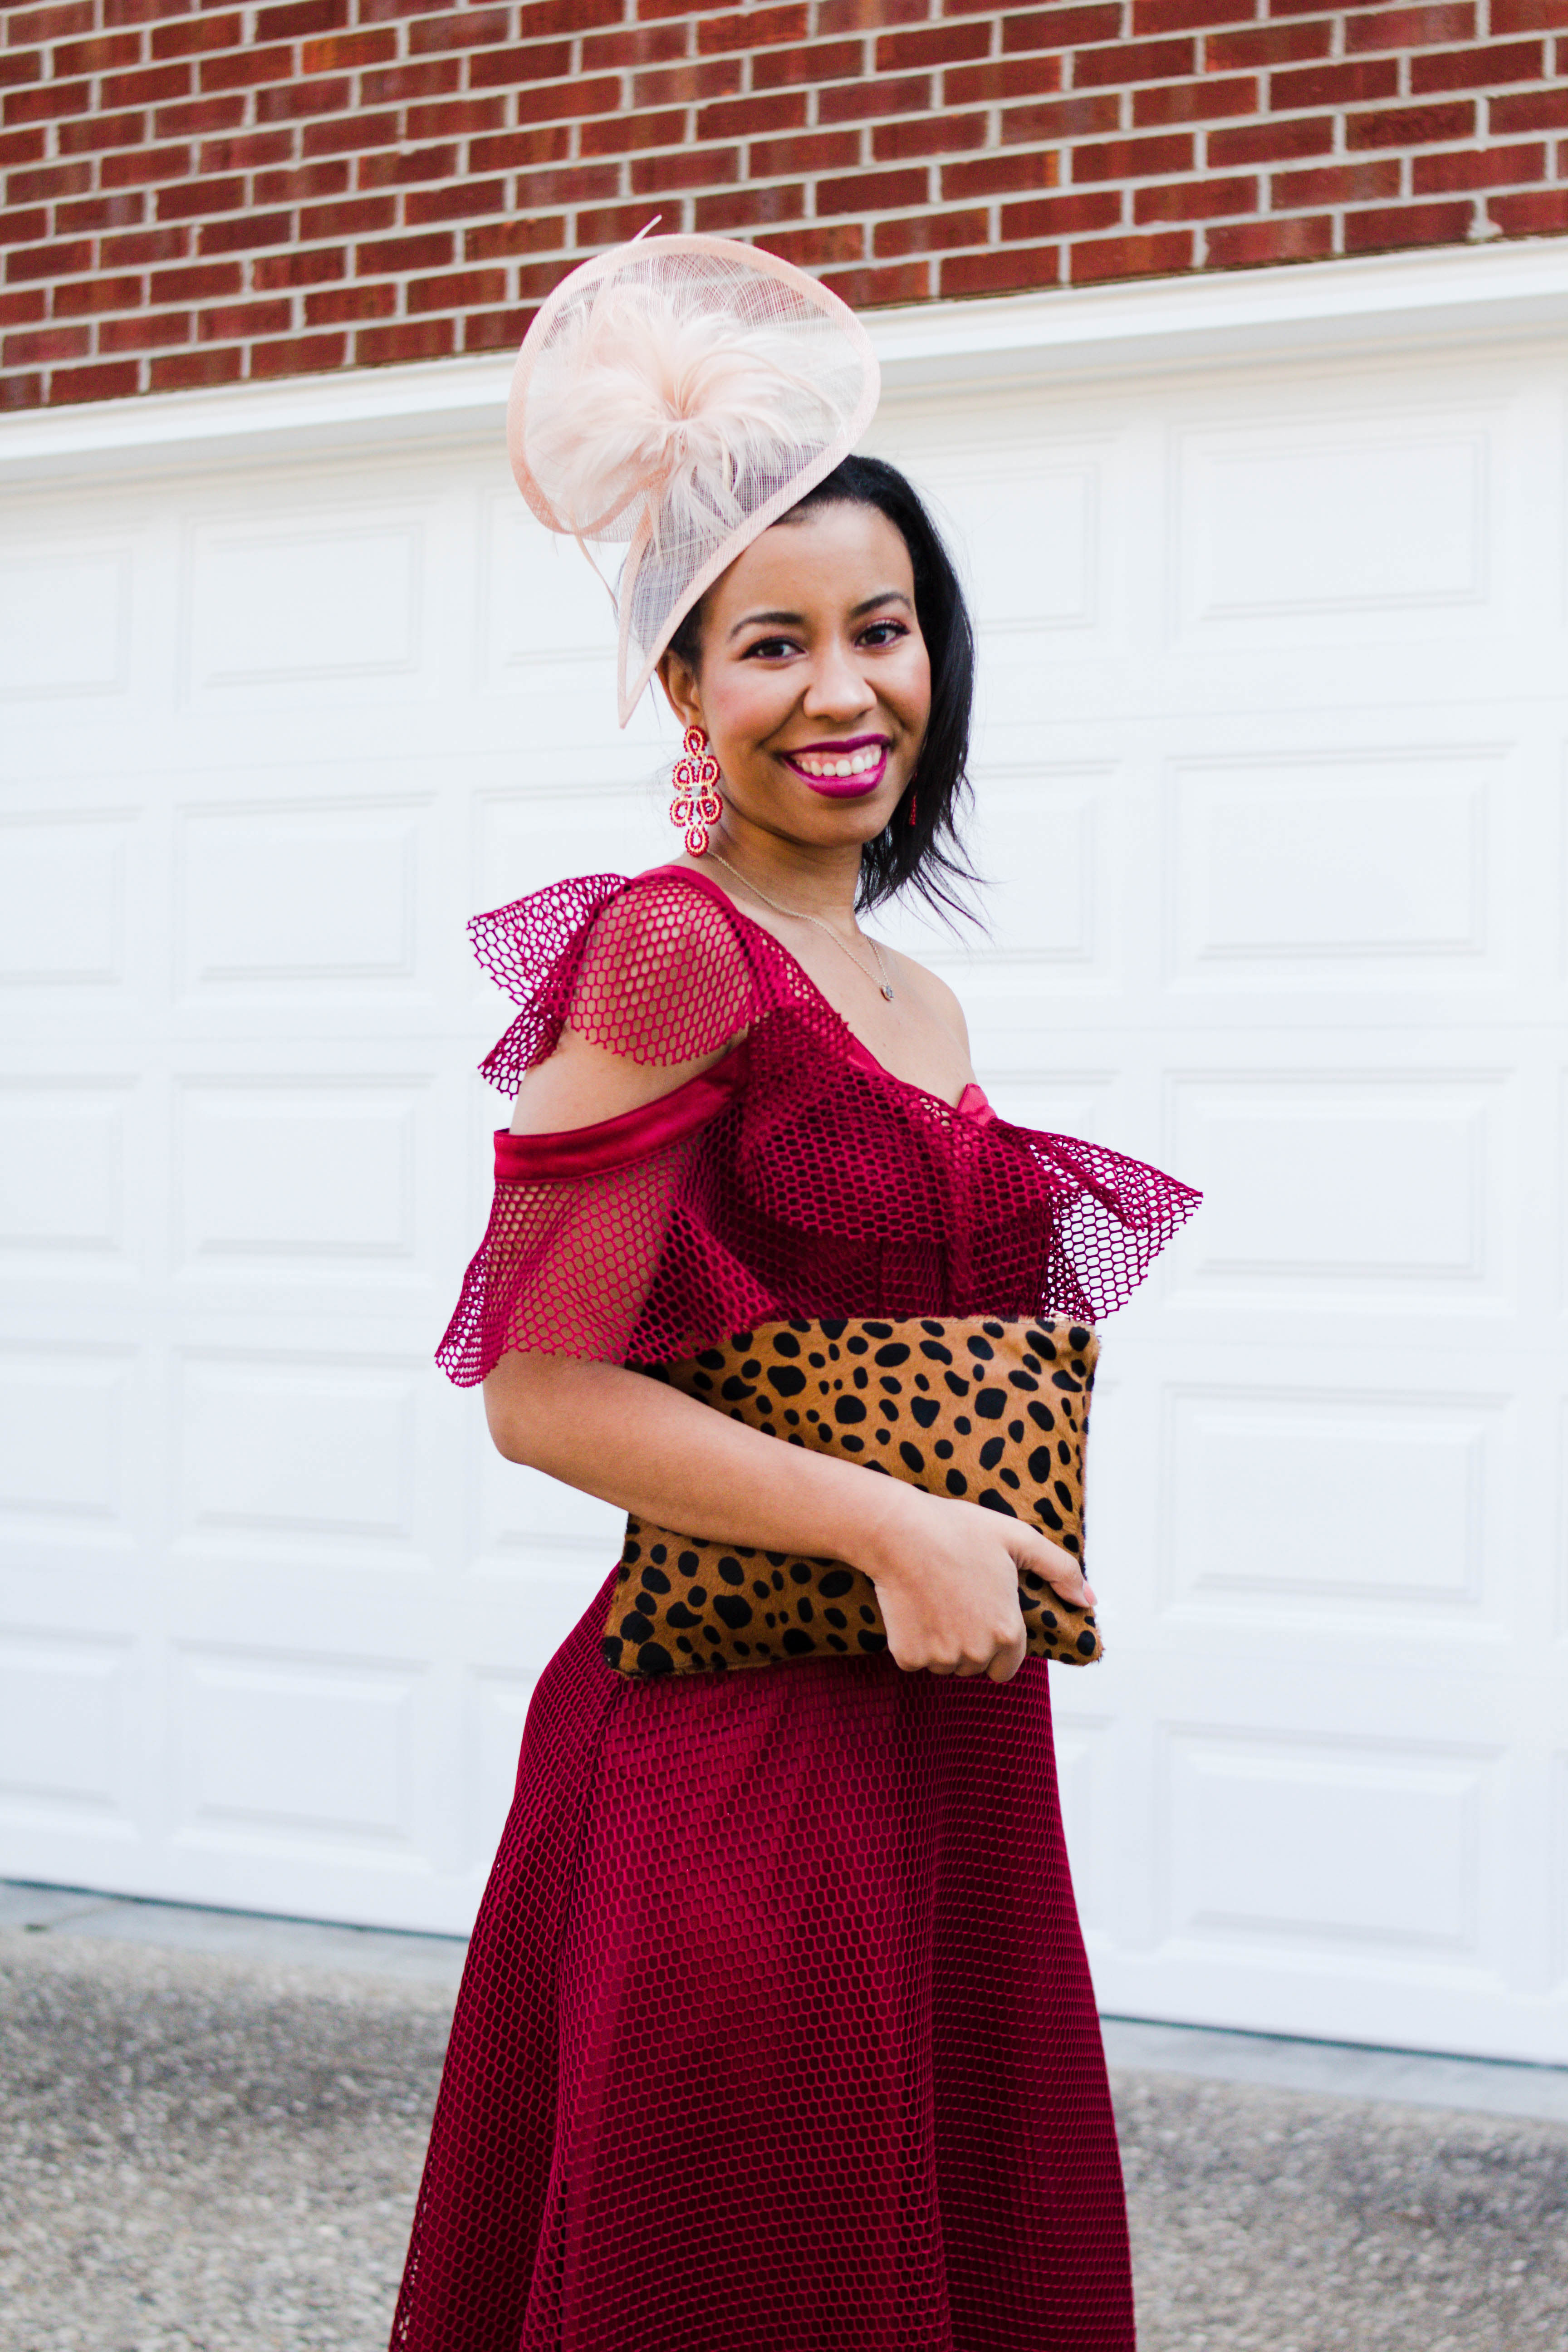 how to affordably dress for ky derby  target giveaway